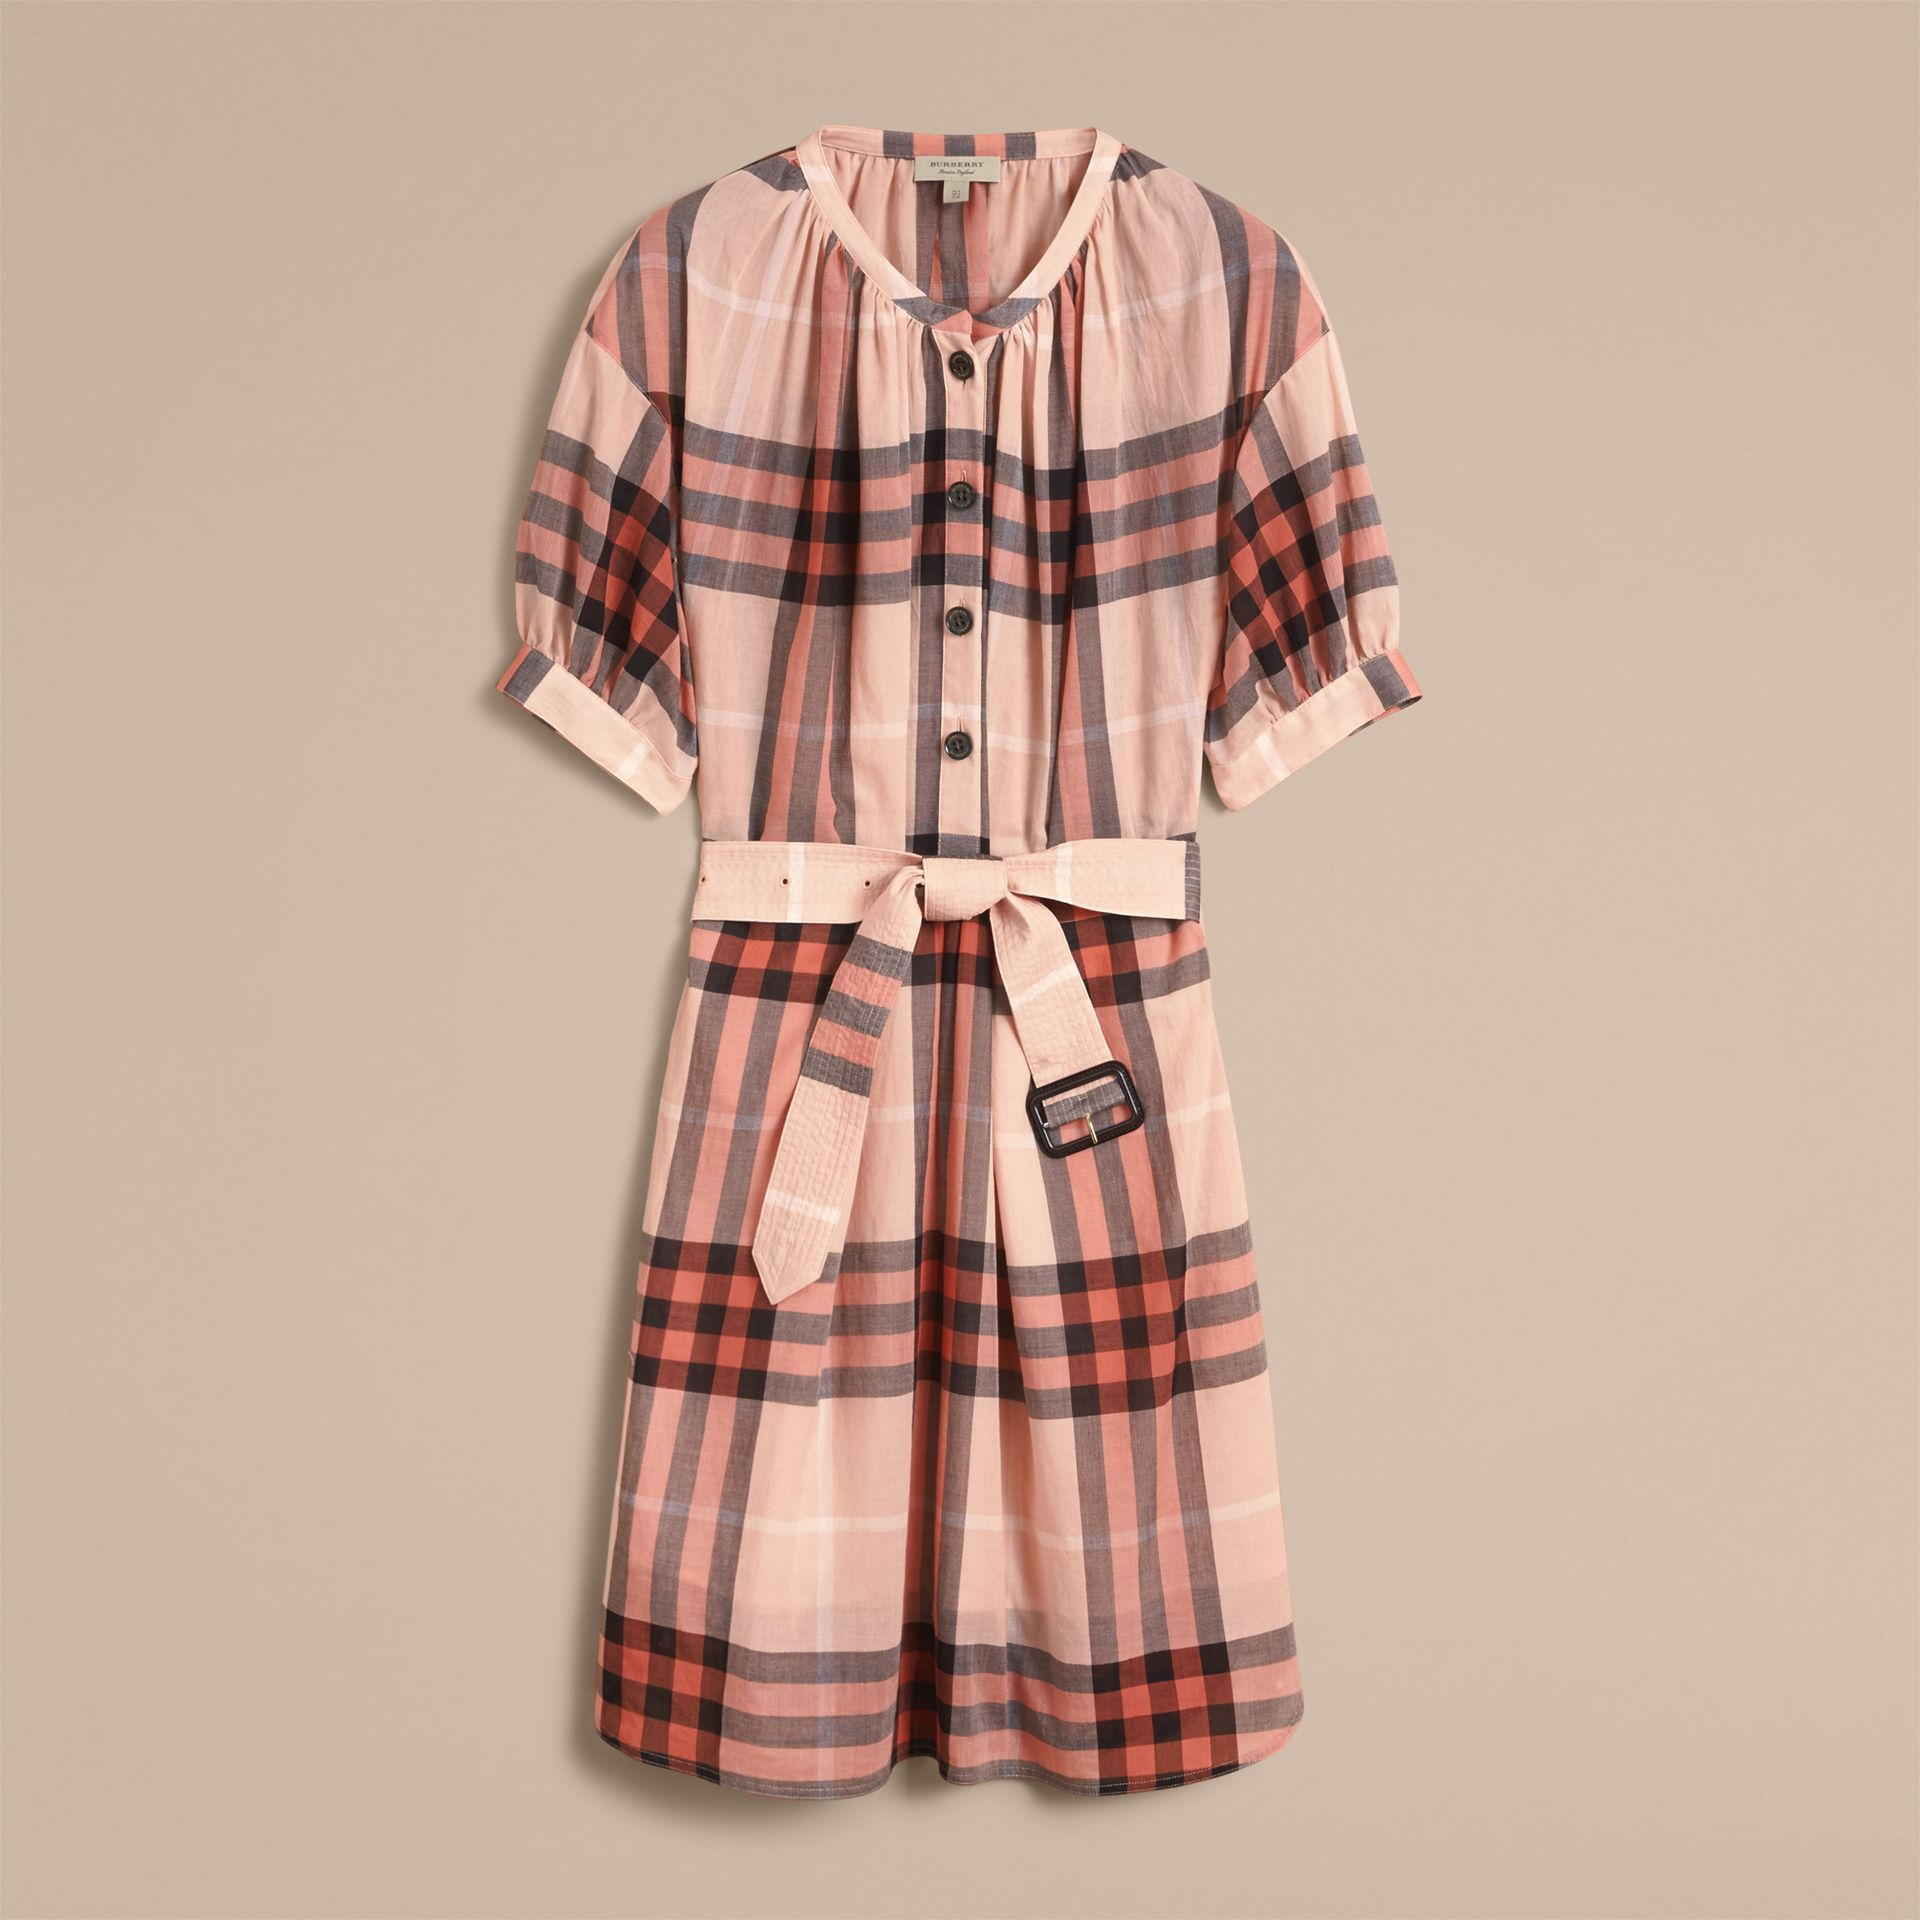 Short-sleeved Collarless Check Cotton Dress in Apricot - Women | Burberry - gallery image 4